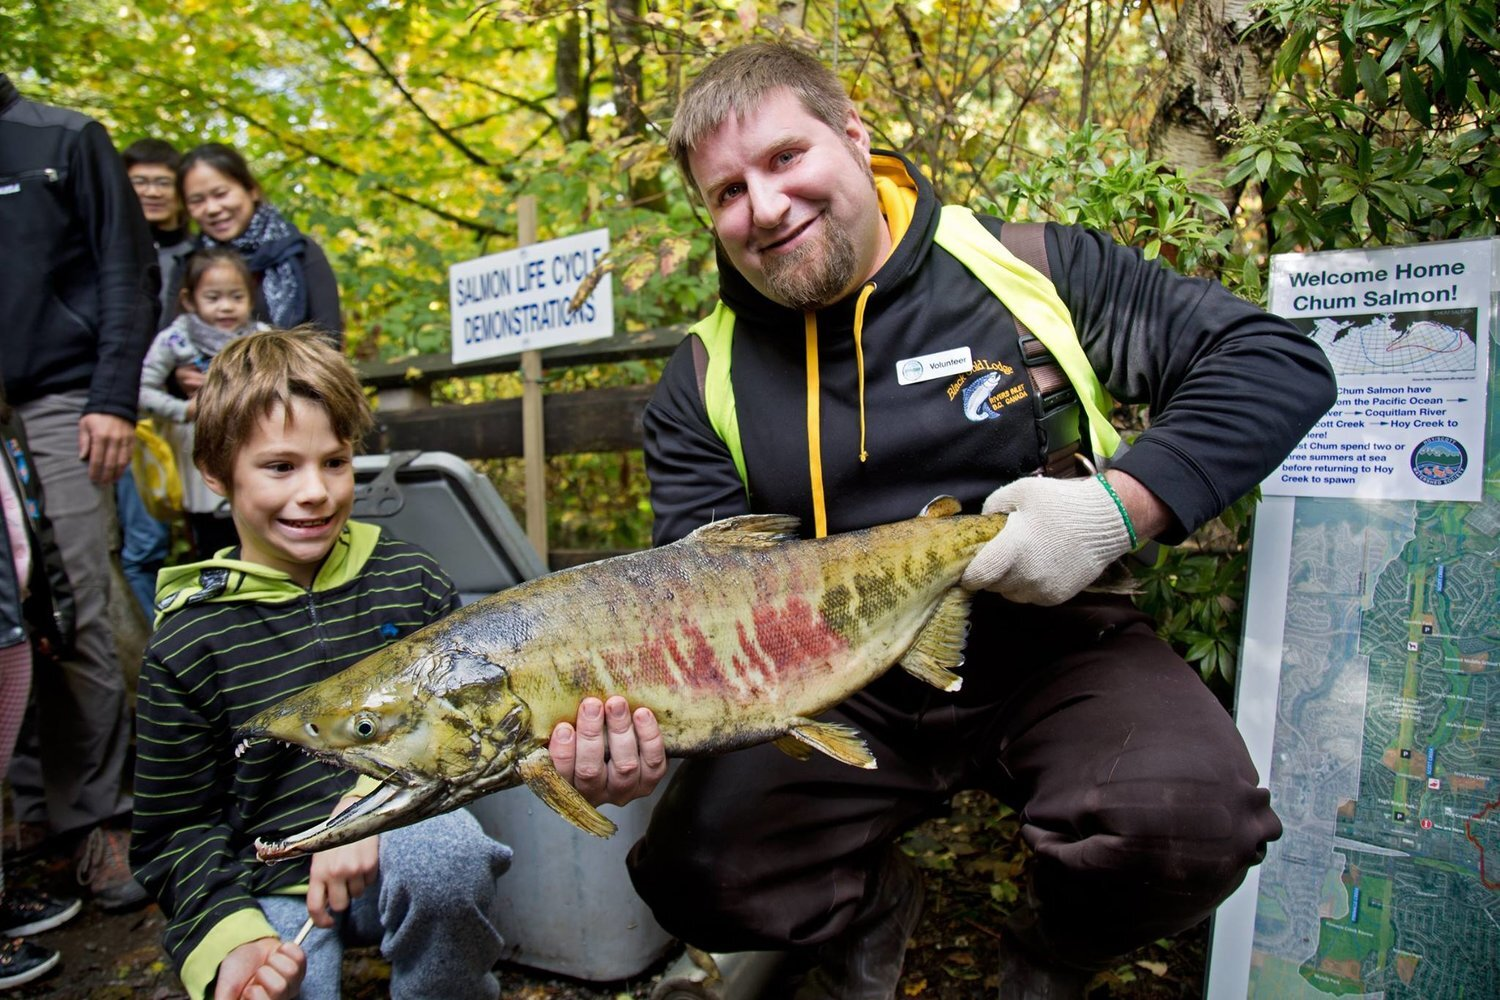 AJ from the Hoy-Scott Watershed Society holds up a chum salmon at Salmon Come Home. (City of Coquitlam photo)